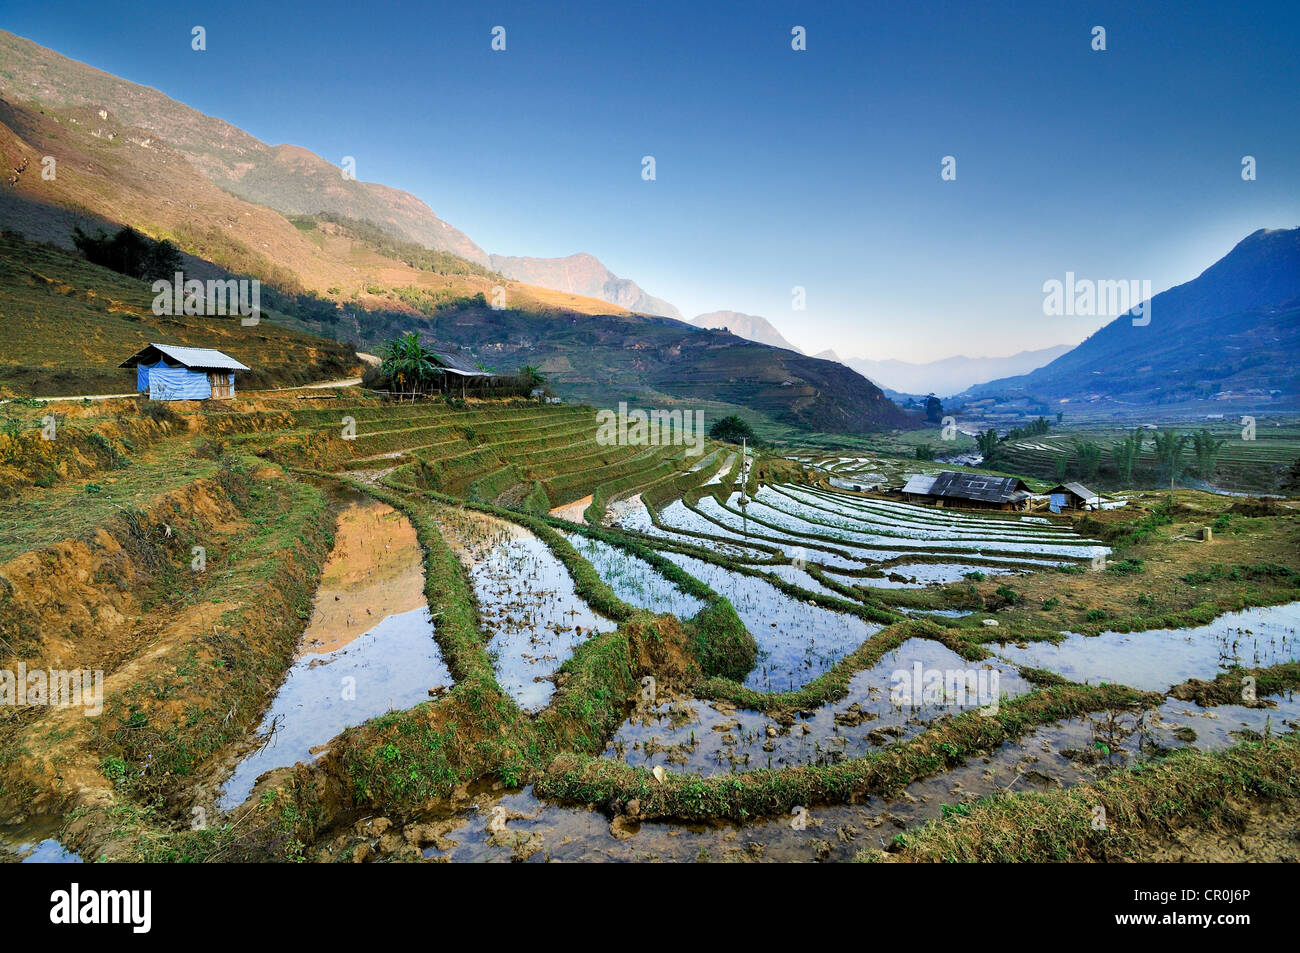 Irrigated rice terraces, rice paddies in Sapa or Sa Pa, Lao Cai province, northern Vietnam, Vietnam, Southeast Asia, - Stock Image